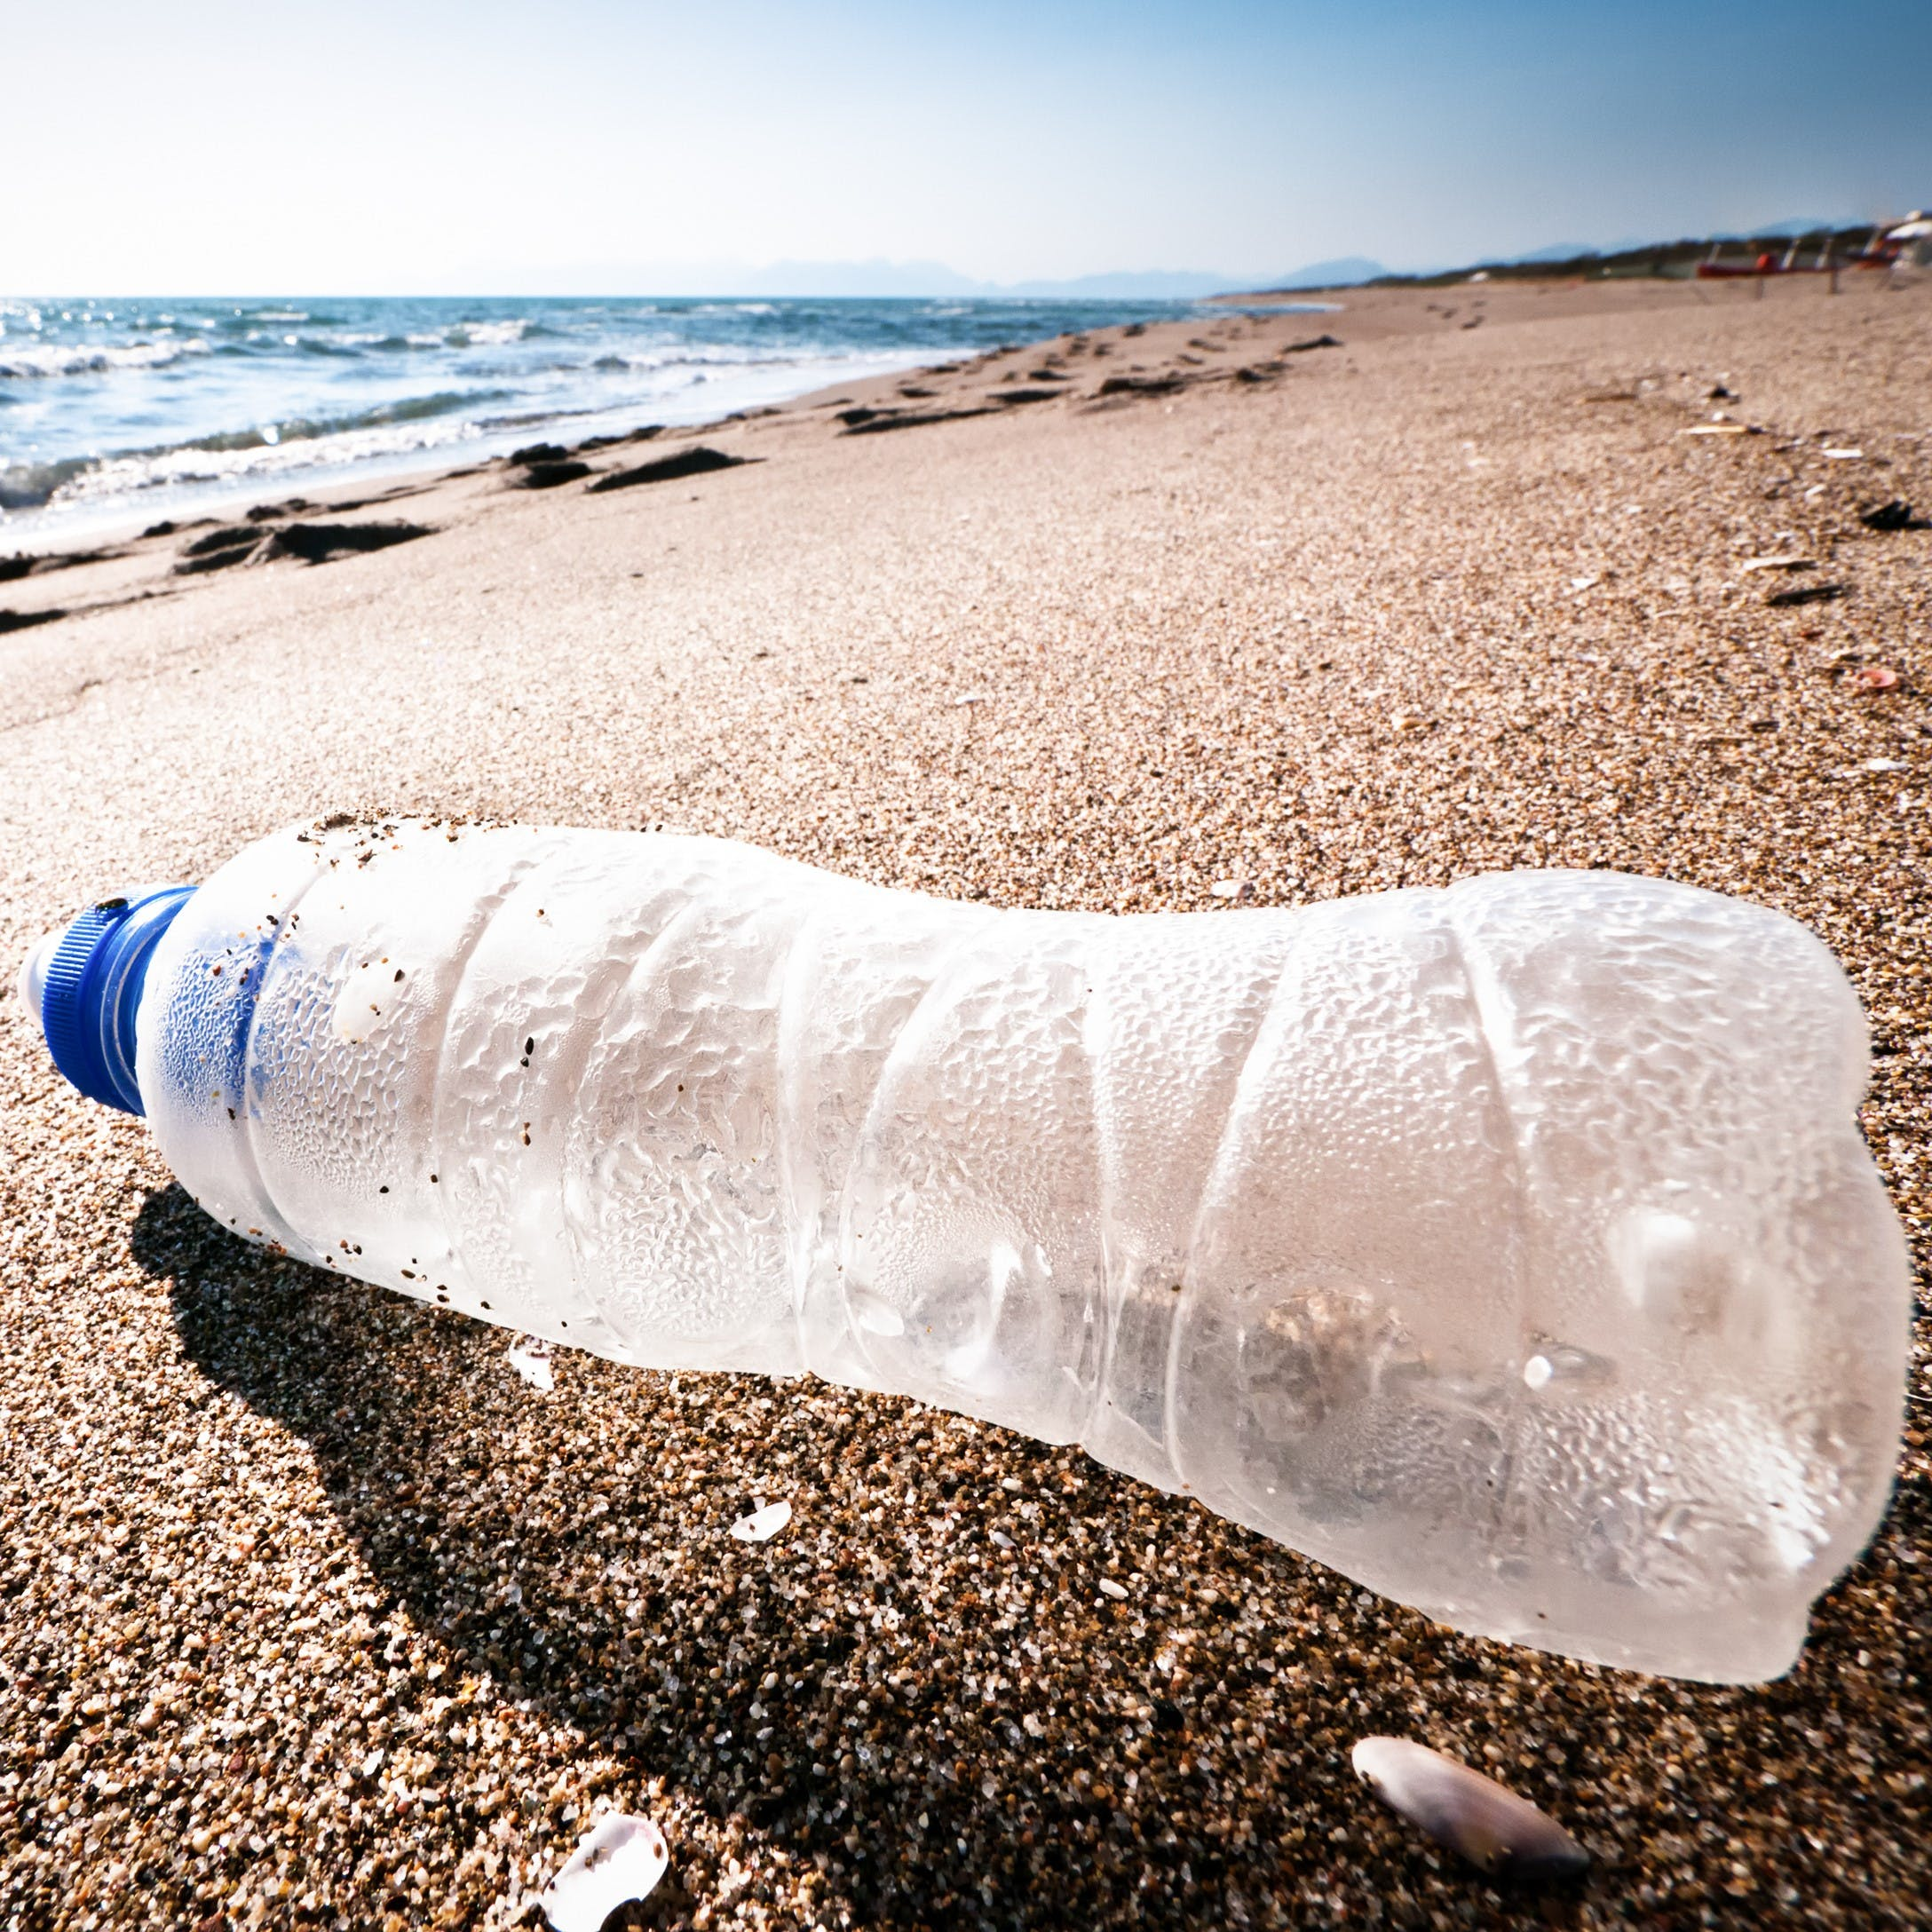 Plastic bottle washed up on beach.